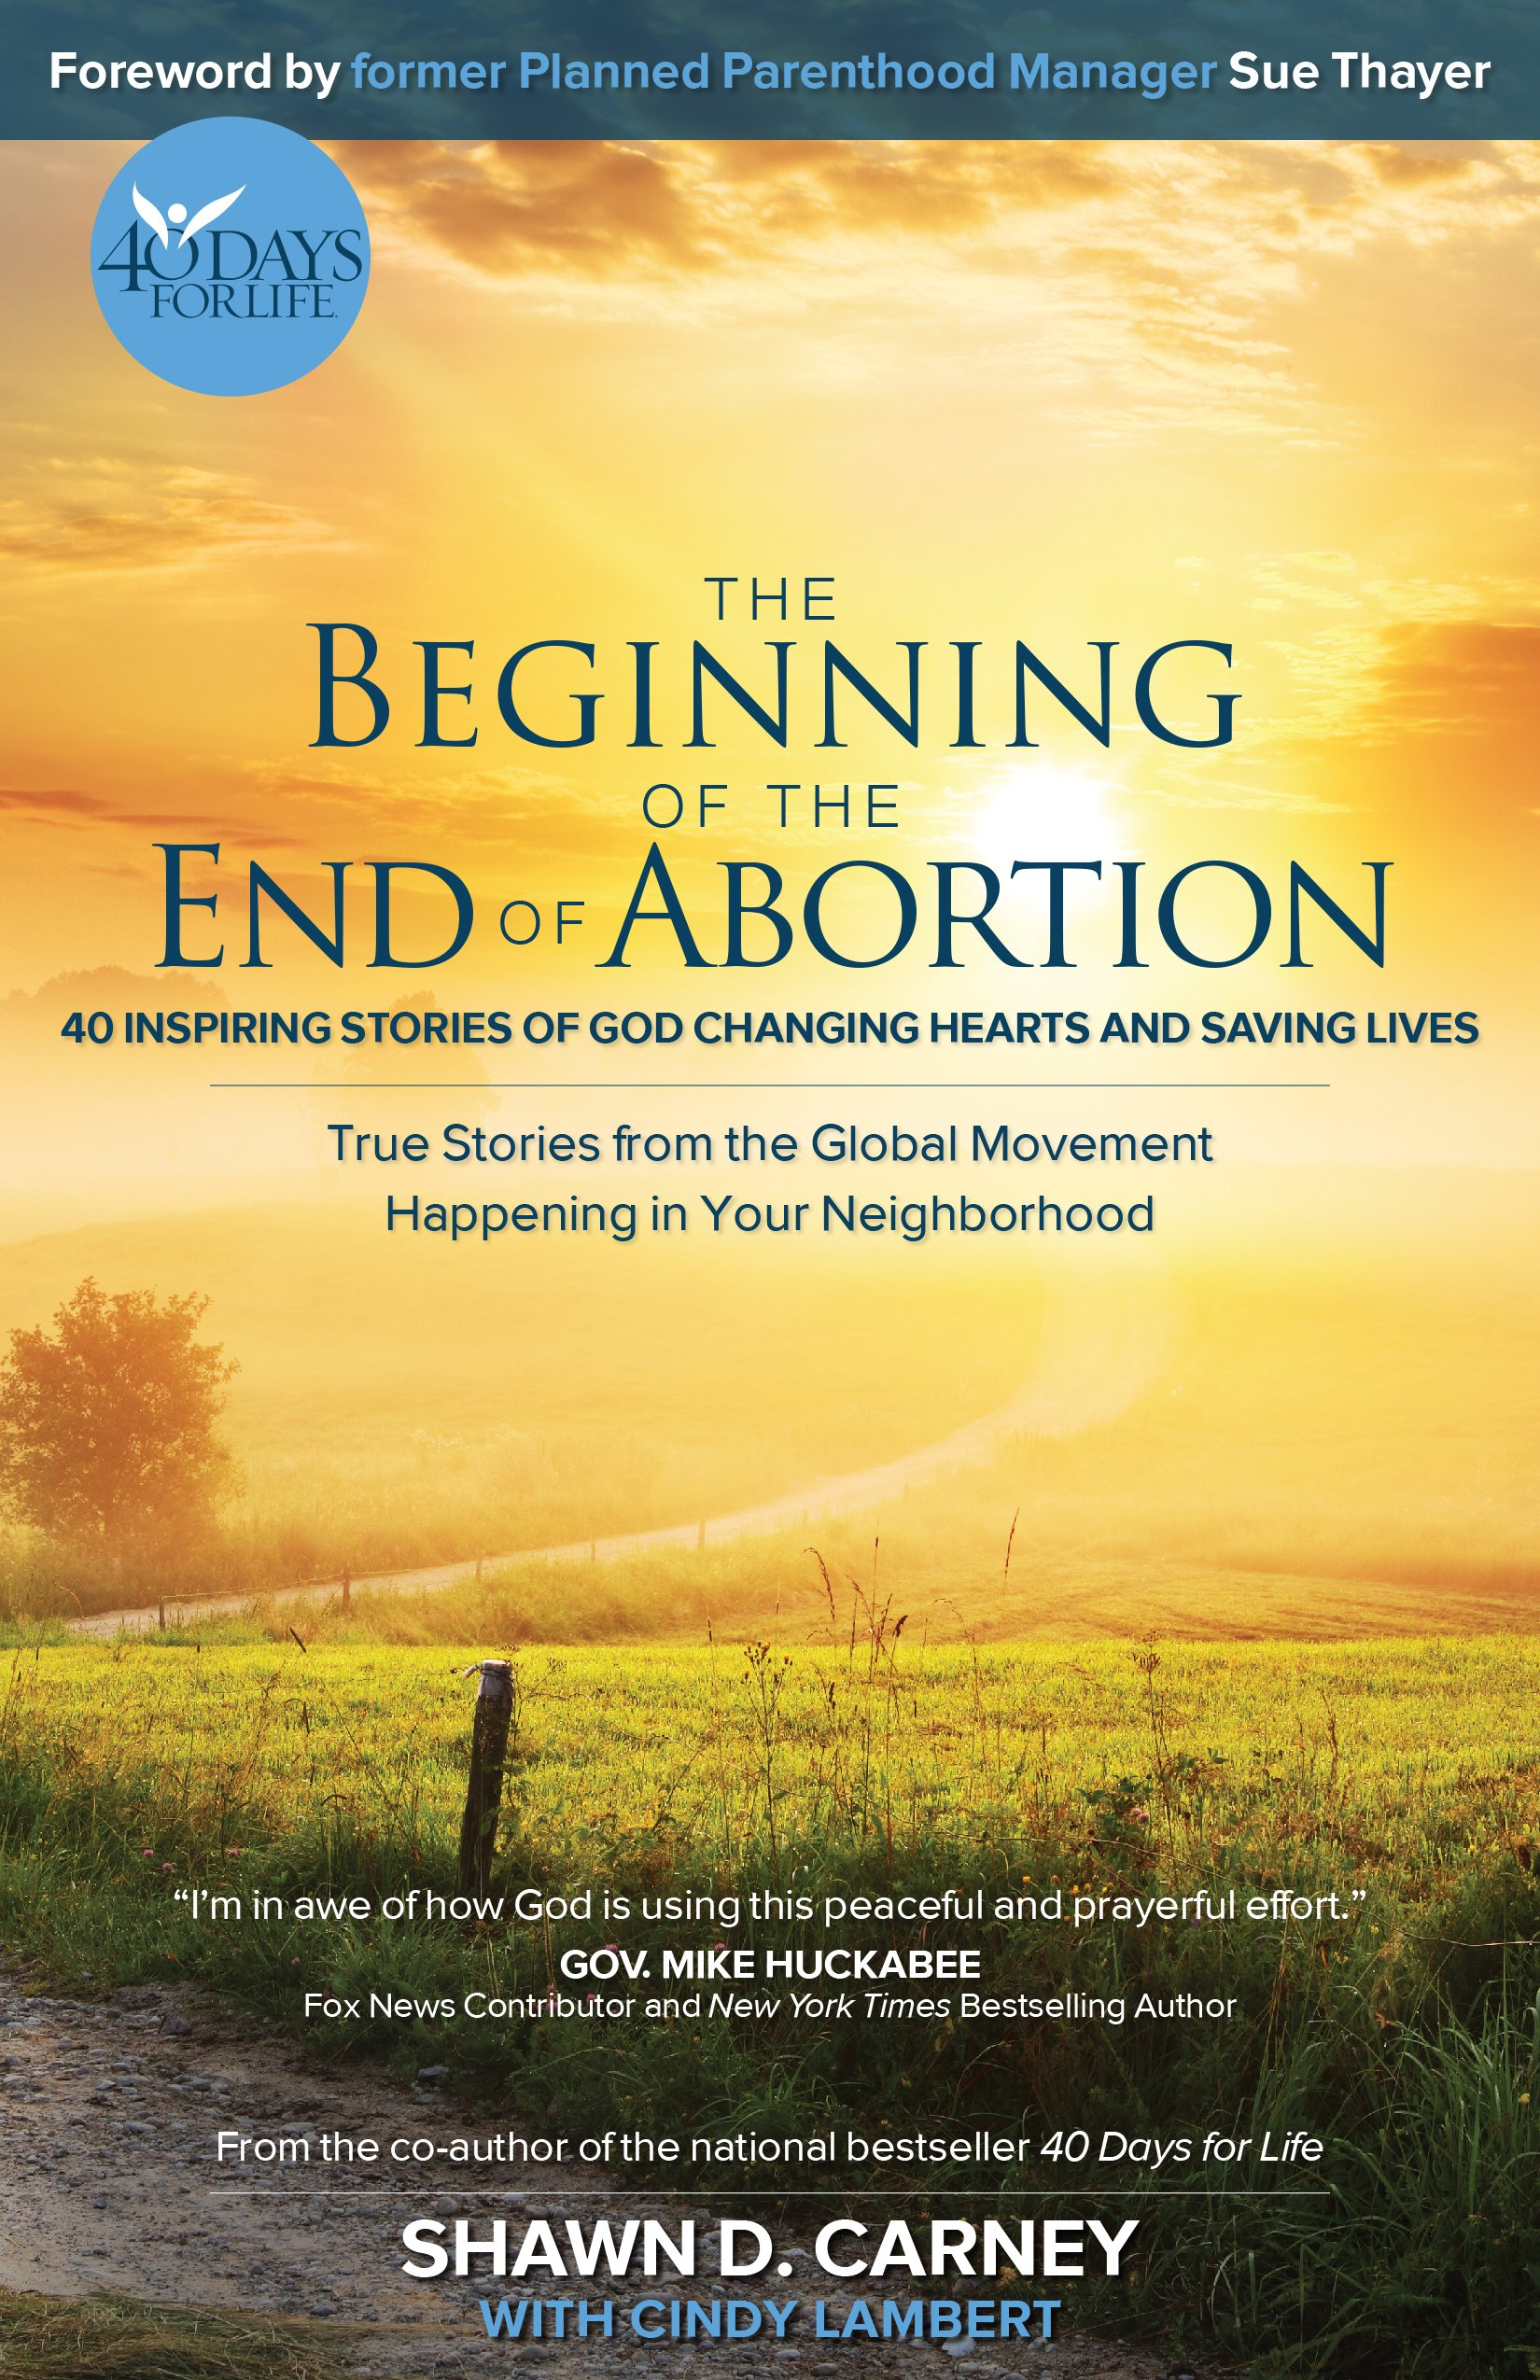 The Beginning of the End of Abortion: 40 Inspiring Stories of God Changing Hearts and Saving Lives pdf